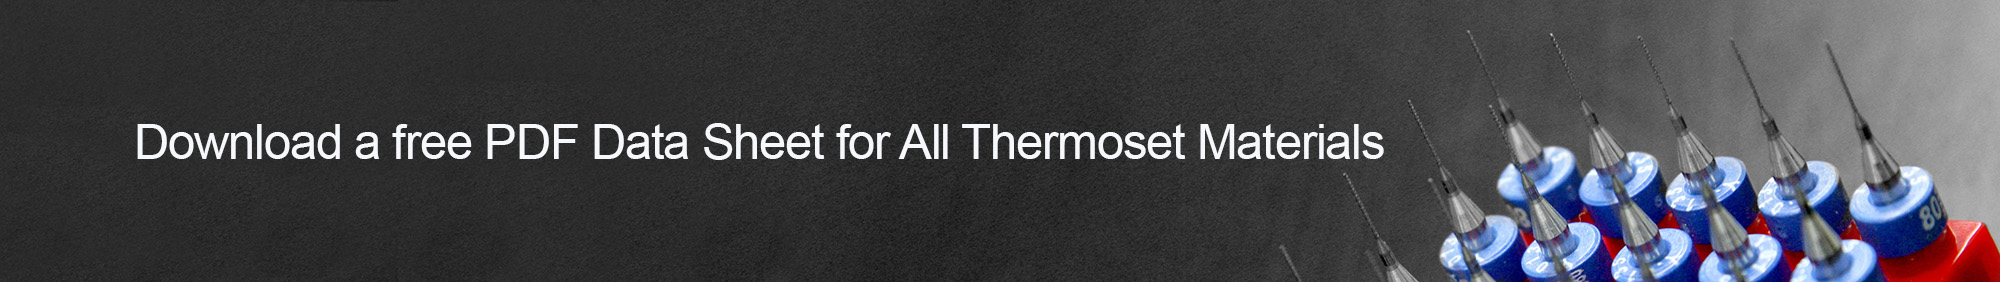 thermoset materials data sheet